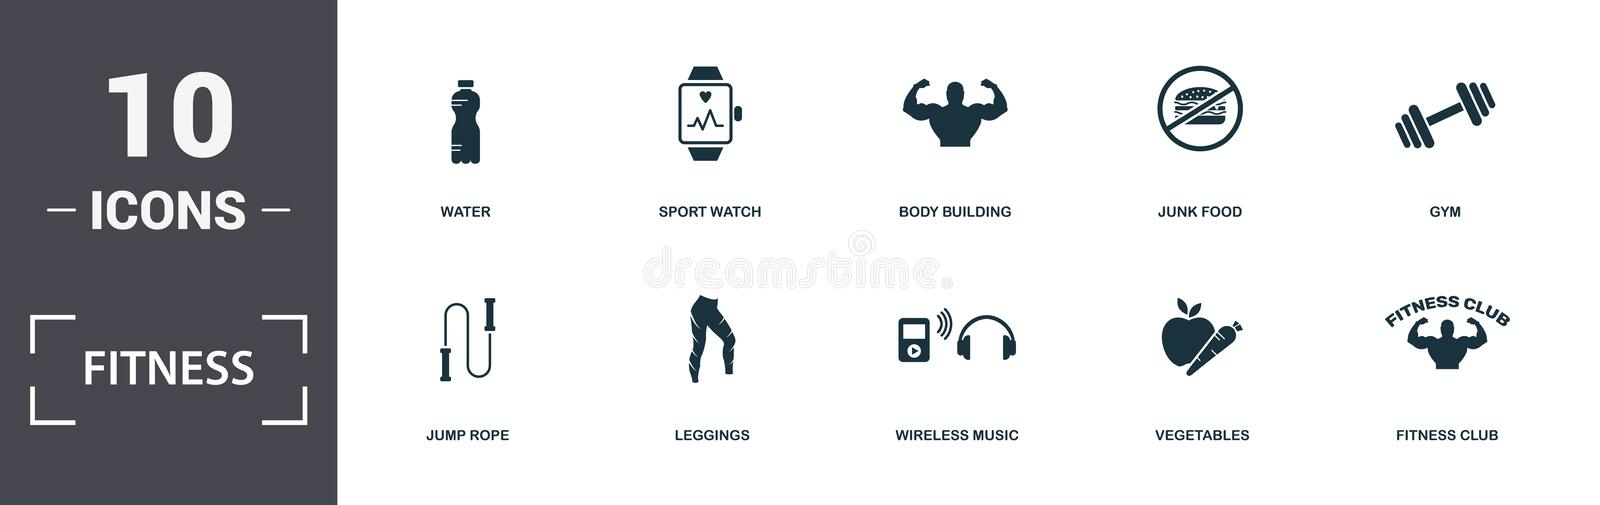 Icone di idoneità set insieme Comprende elementi semplici come Acqua, Sport Watch, Body Building, Junk Food, Gym, Leggings e illustrazione vettoriale